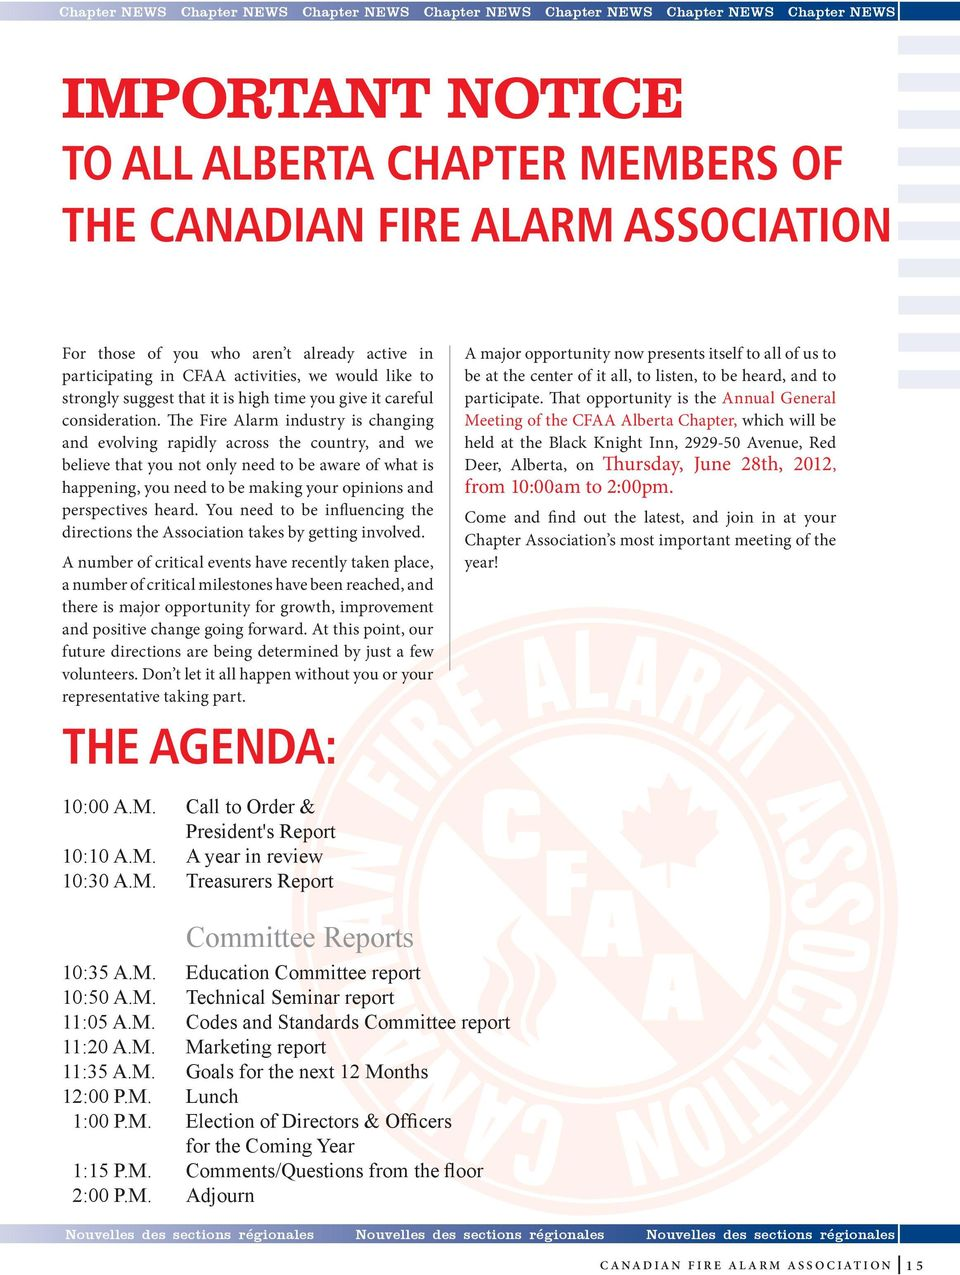 The Fire Alarm industry is changing and evolving rapidly across the country, and we believe that you not only need to be aware of what is happening, you need to be making your opinions and